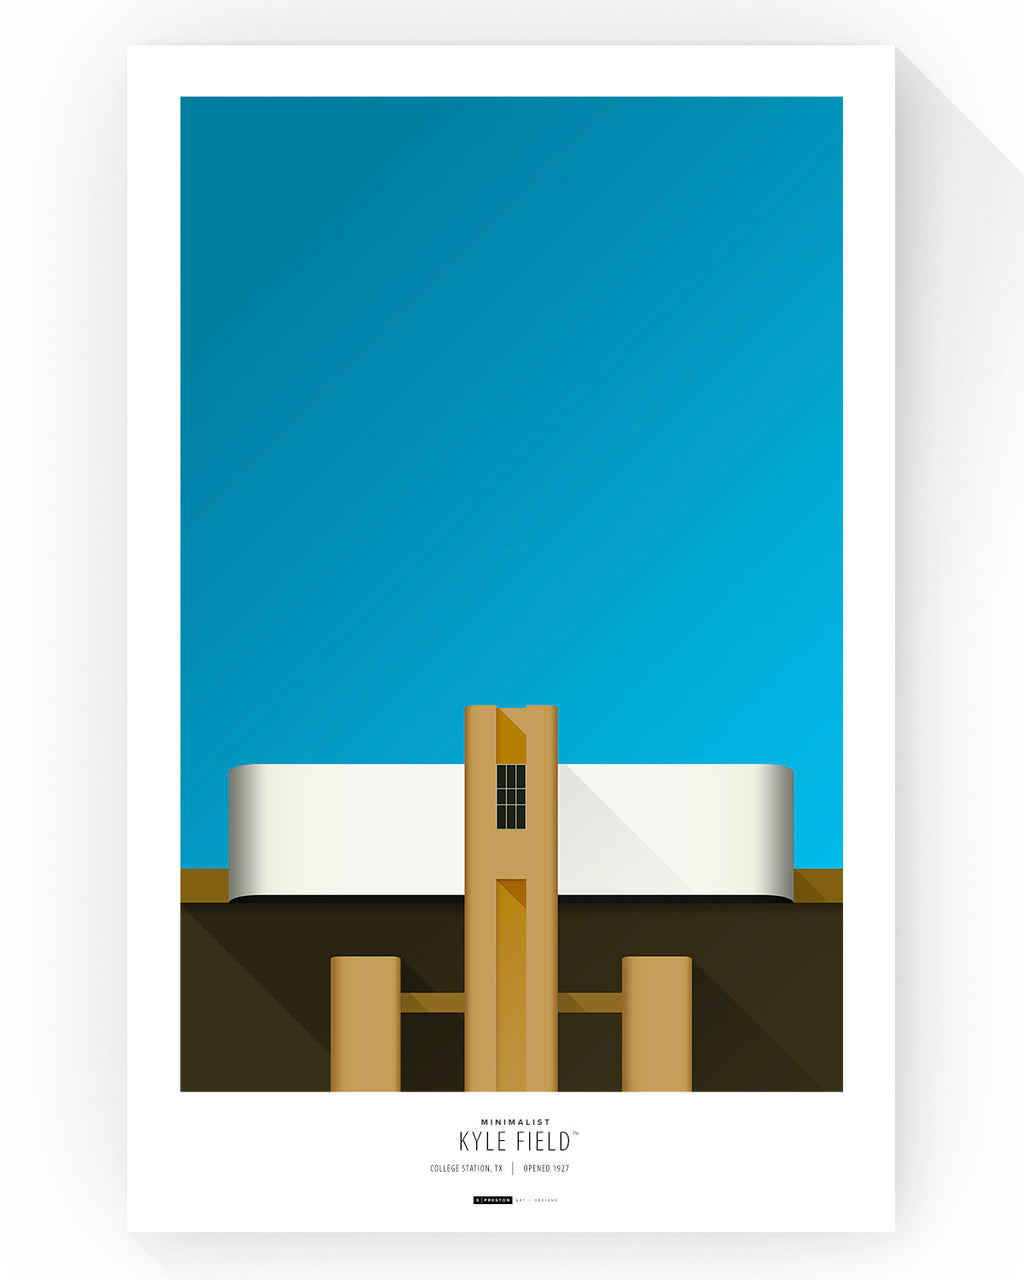 Minimalist Kyle Field Poster Print Texas A&M - S Preston